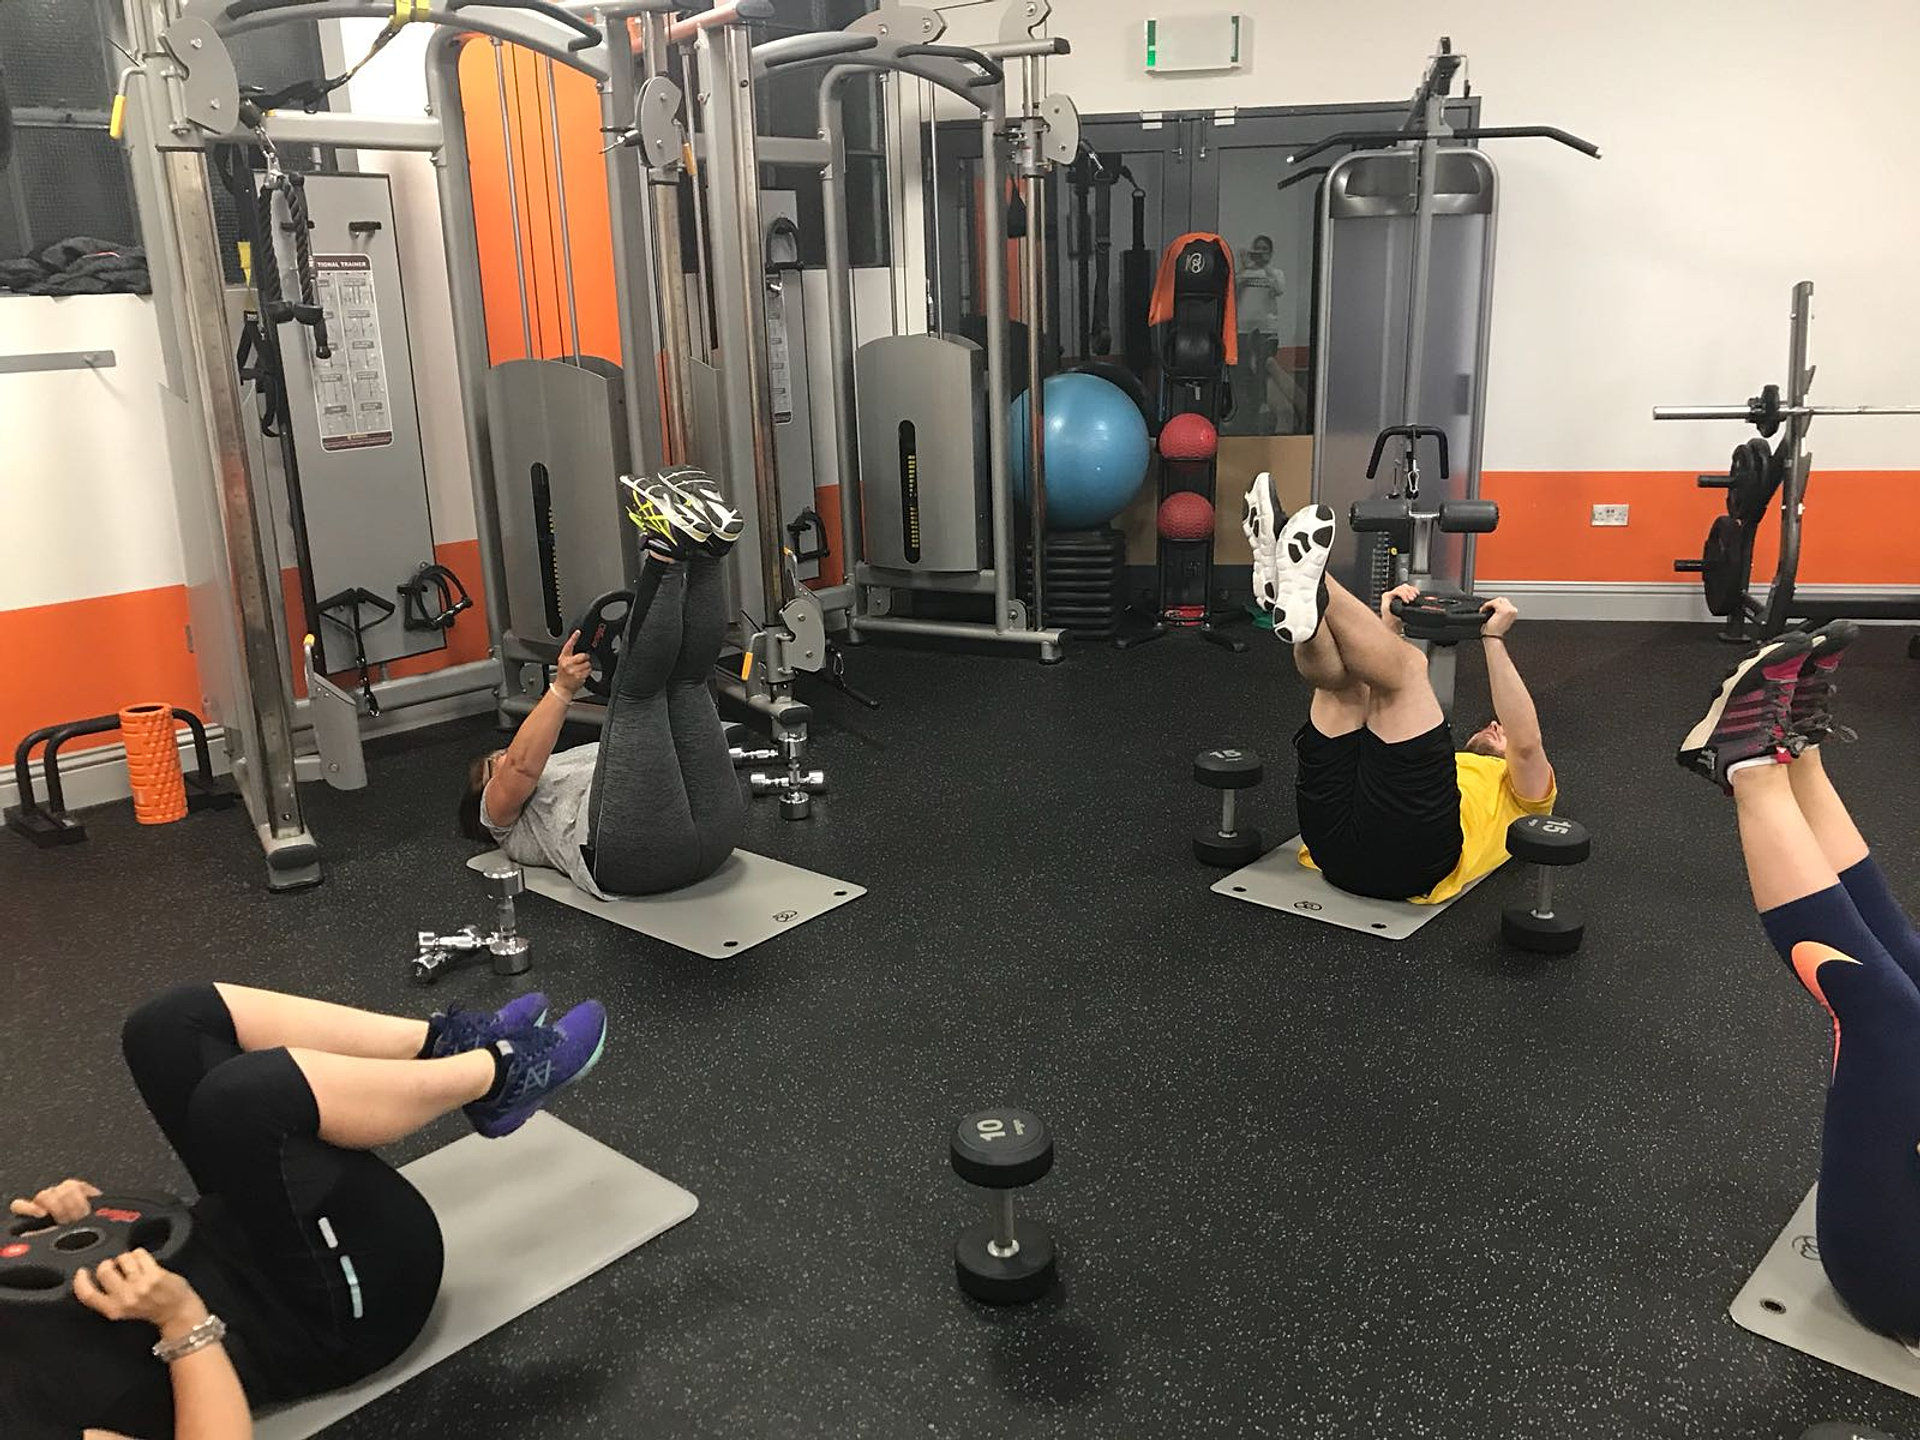 Physique Fitness New Gym In Tring Run By Personal Trainers - 20 problems every gym goer can relate